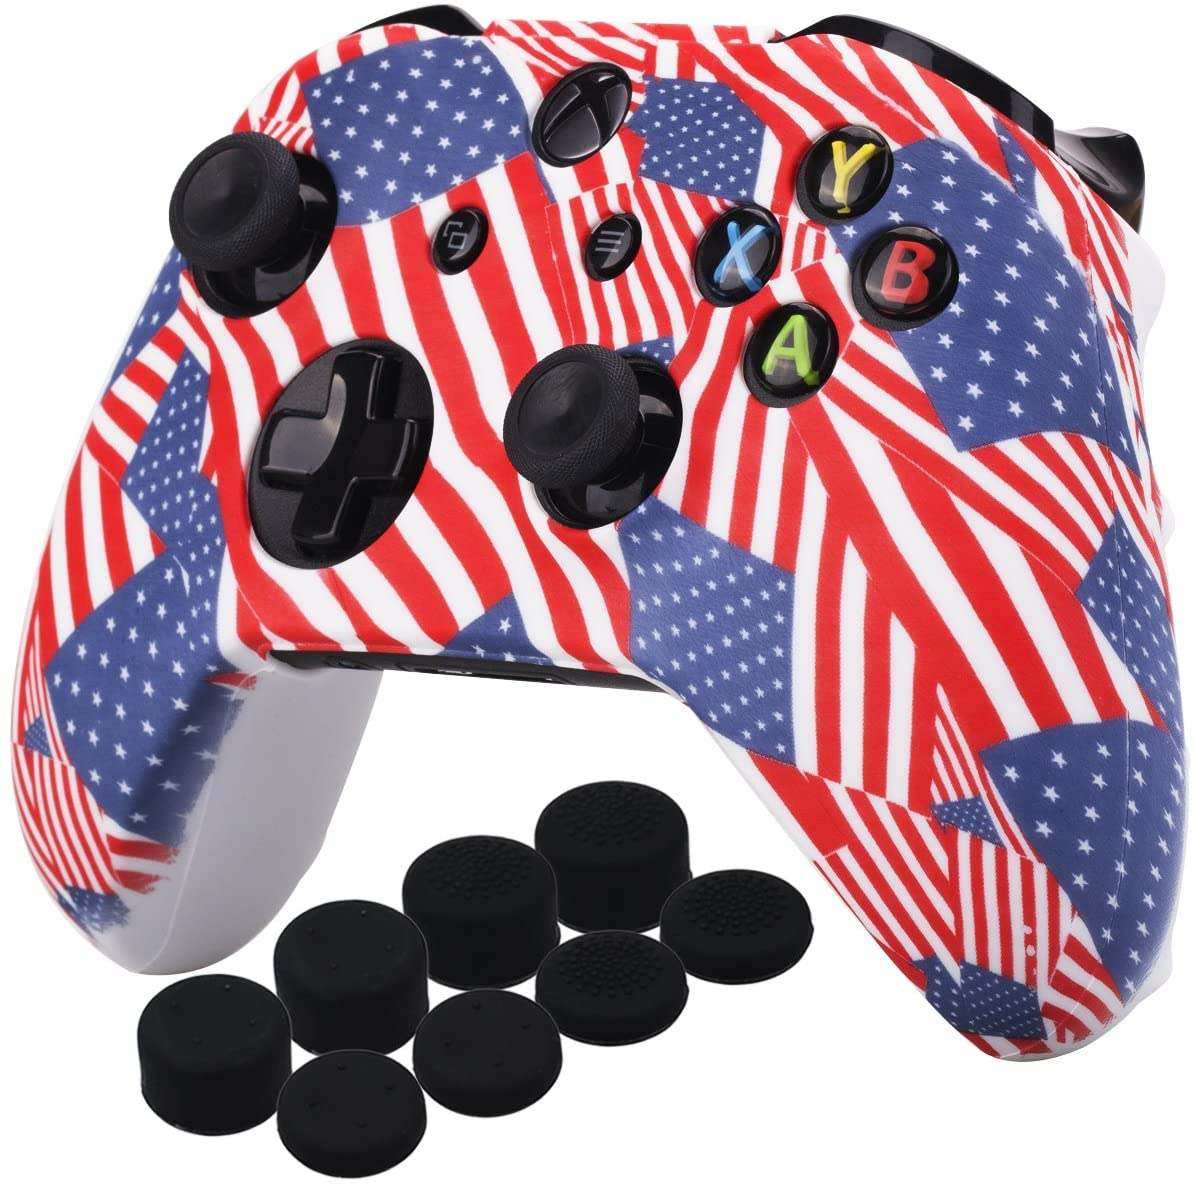 YoRHa Printing Rubber Silicone Cover Skin Case for Xbox One S/X Controller x 1(US Flag) with PRO Thumb Grips x 8